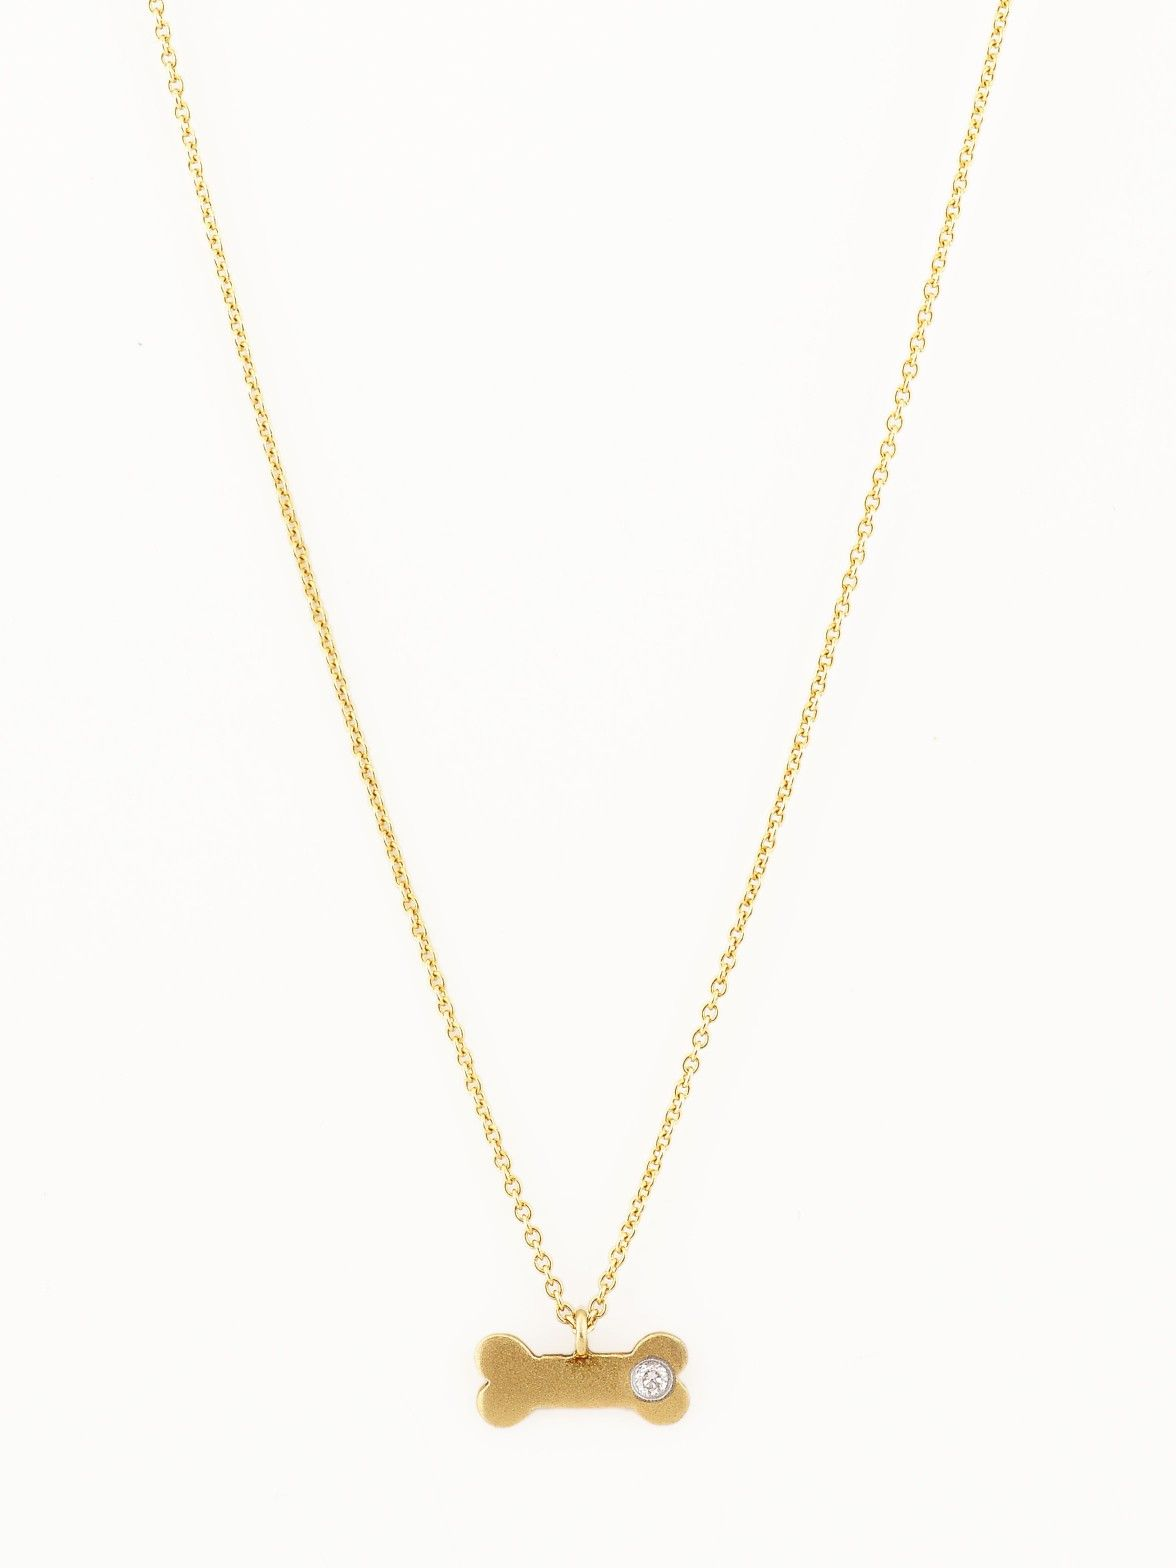 Meira t 14k yellow gold and diamond dog bone pendant necklace at meira t 14k yellow gold and diamond dog bone pendant necklace at london jewelers 275 aloadofball Gallery